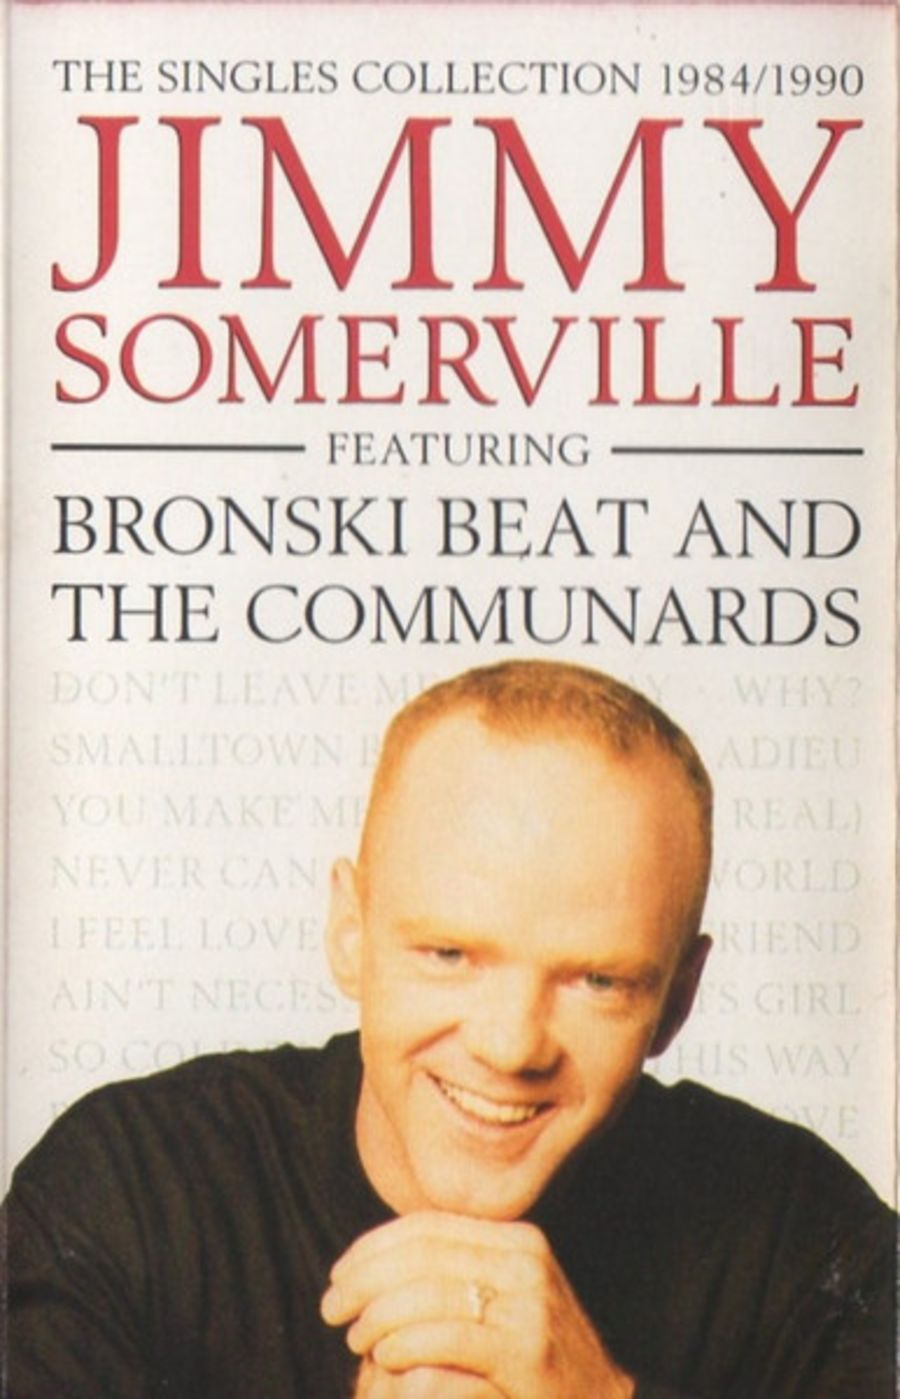 Jimmy Somerville Featuring Bronski Beat And The Communards – The Singles Collection 1984/1990 cassette